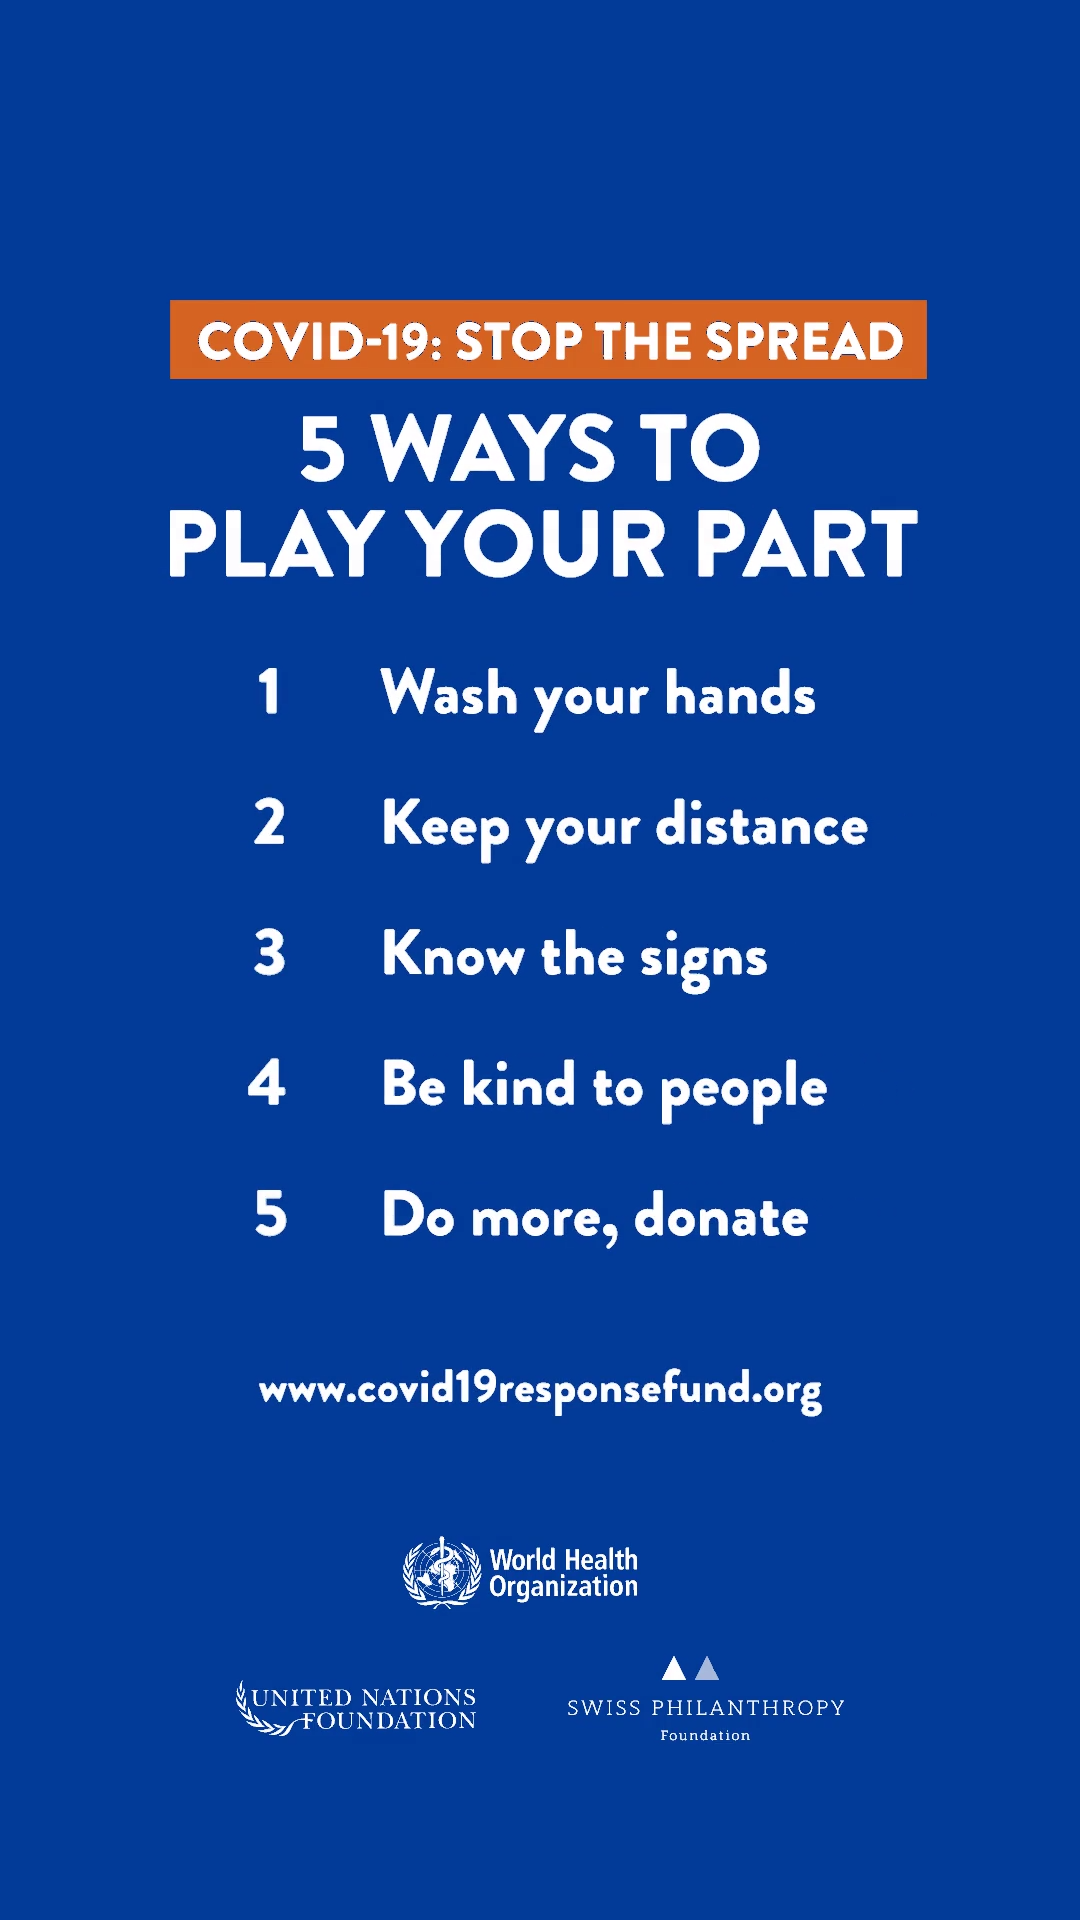 We Ve Got To Work Together To Stop The Spread Of Covid 19 Here Are 5 Simple But Effective Things You Can Do To Protect Yourself And Others Including Donate G